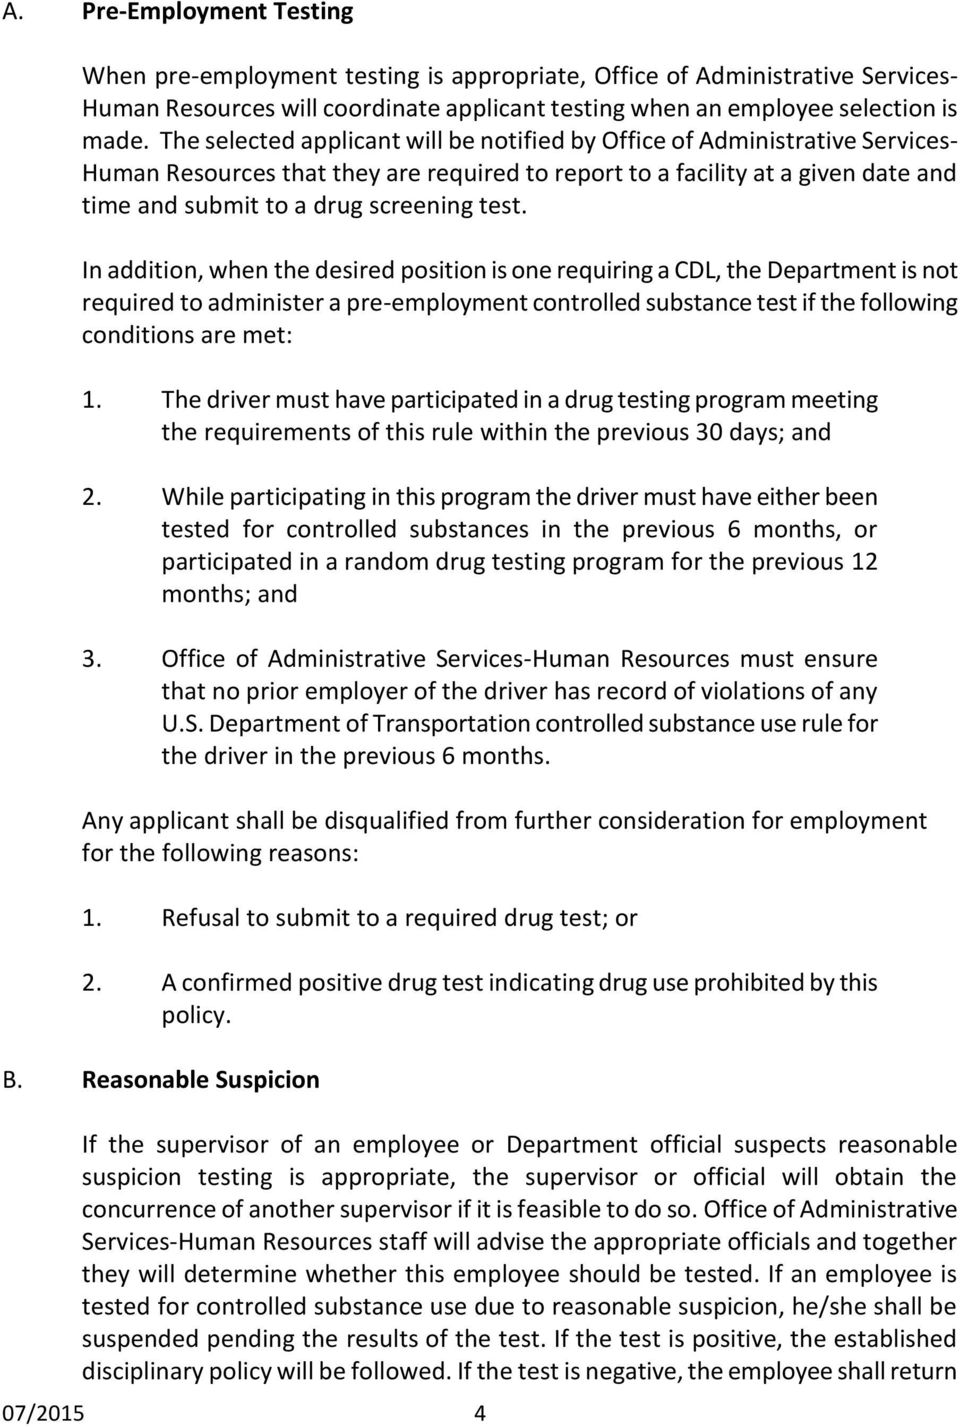 test. In addition, when the desired position is one requiring a CDL, the Department is not required to administer a pre-employment controlled substance test if the following conditions are met: 1.